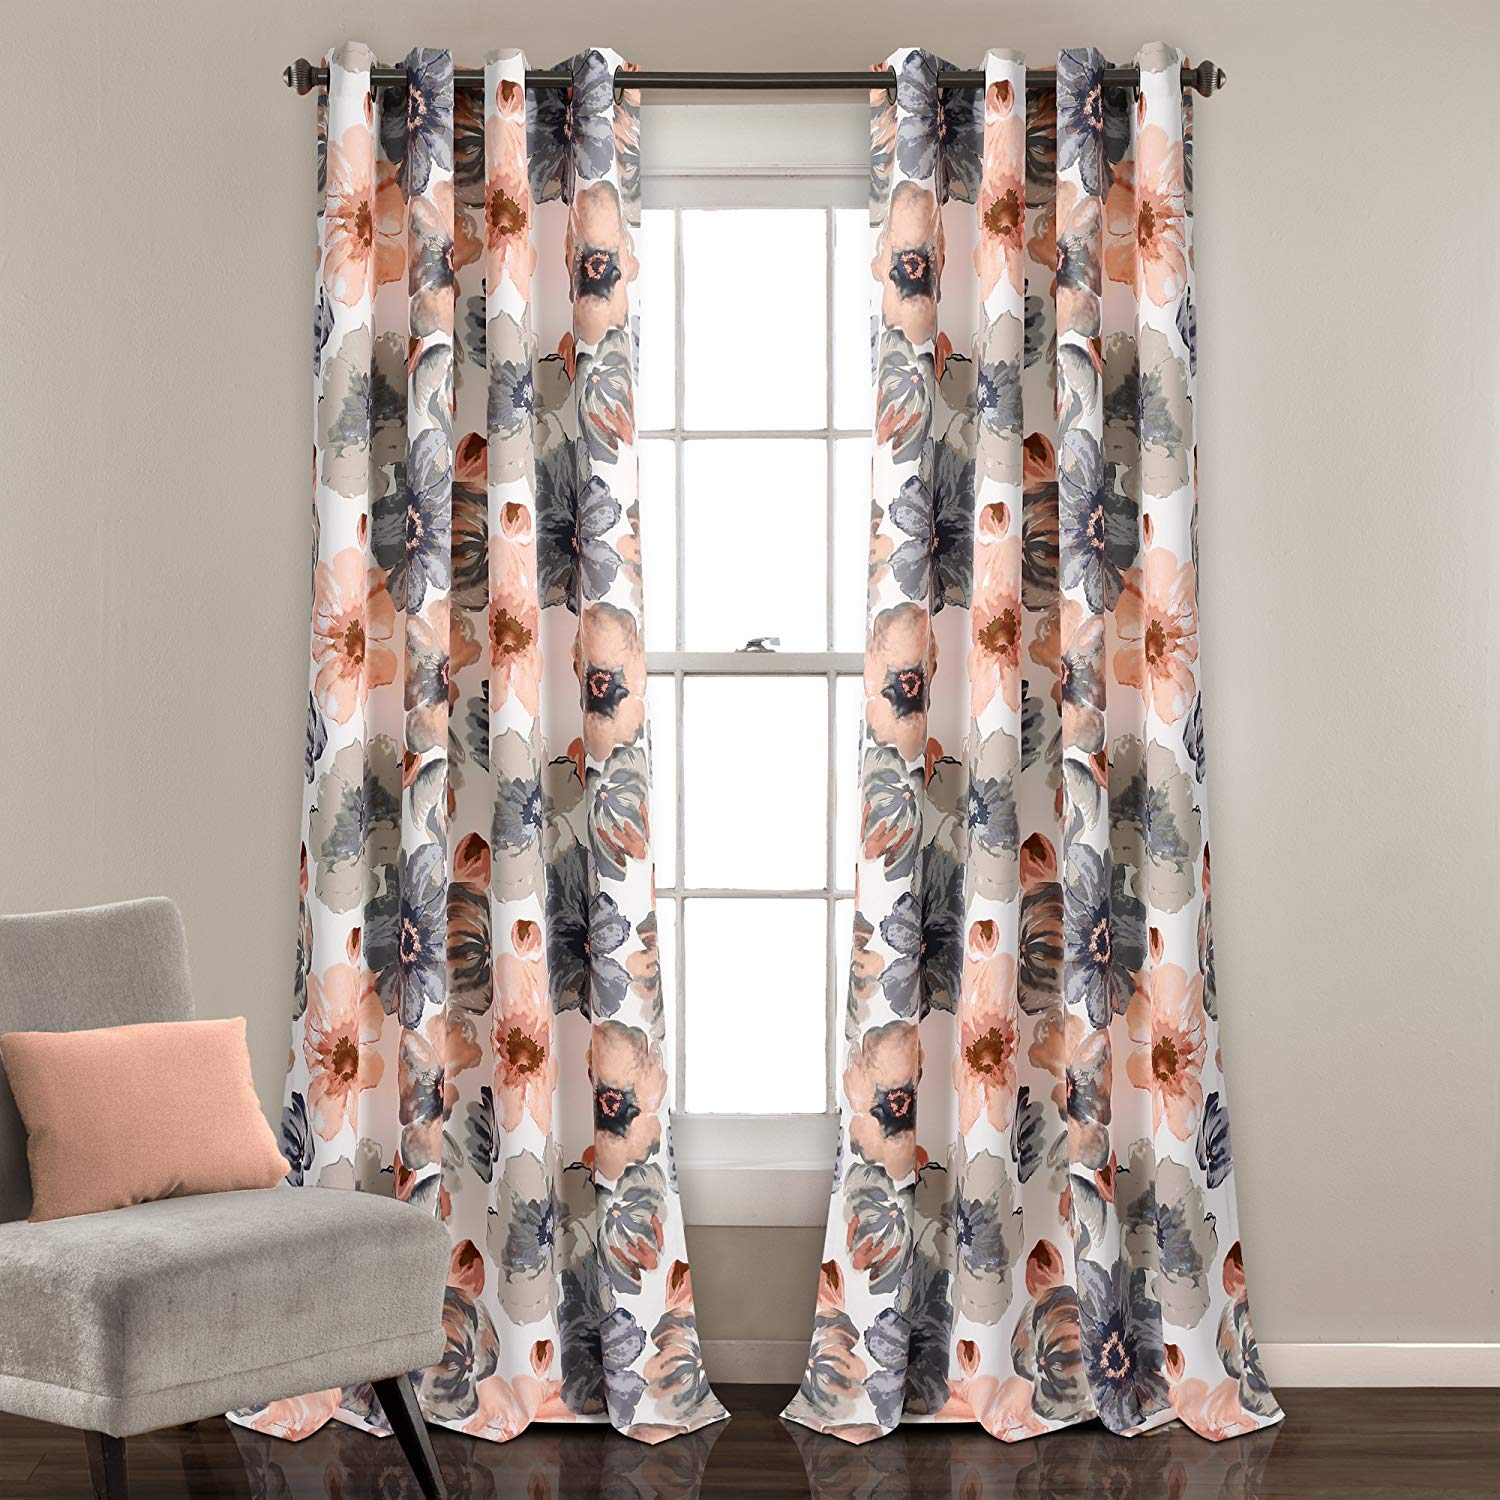 """Jody Clarke 2PC Room Darkening Window Curtain Flowers Pattern Set Energy Saver with Bronze Grommets in Multiple Colors and Sizes Matched Valance Sold Separately (84"""" Coral)"""